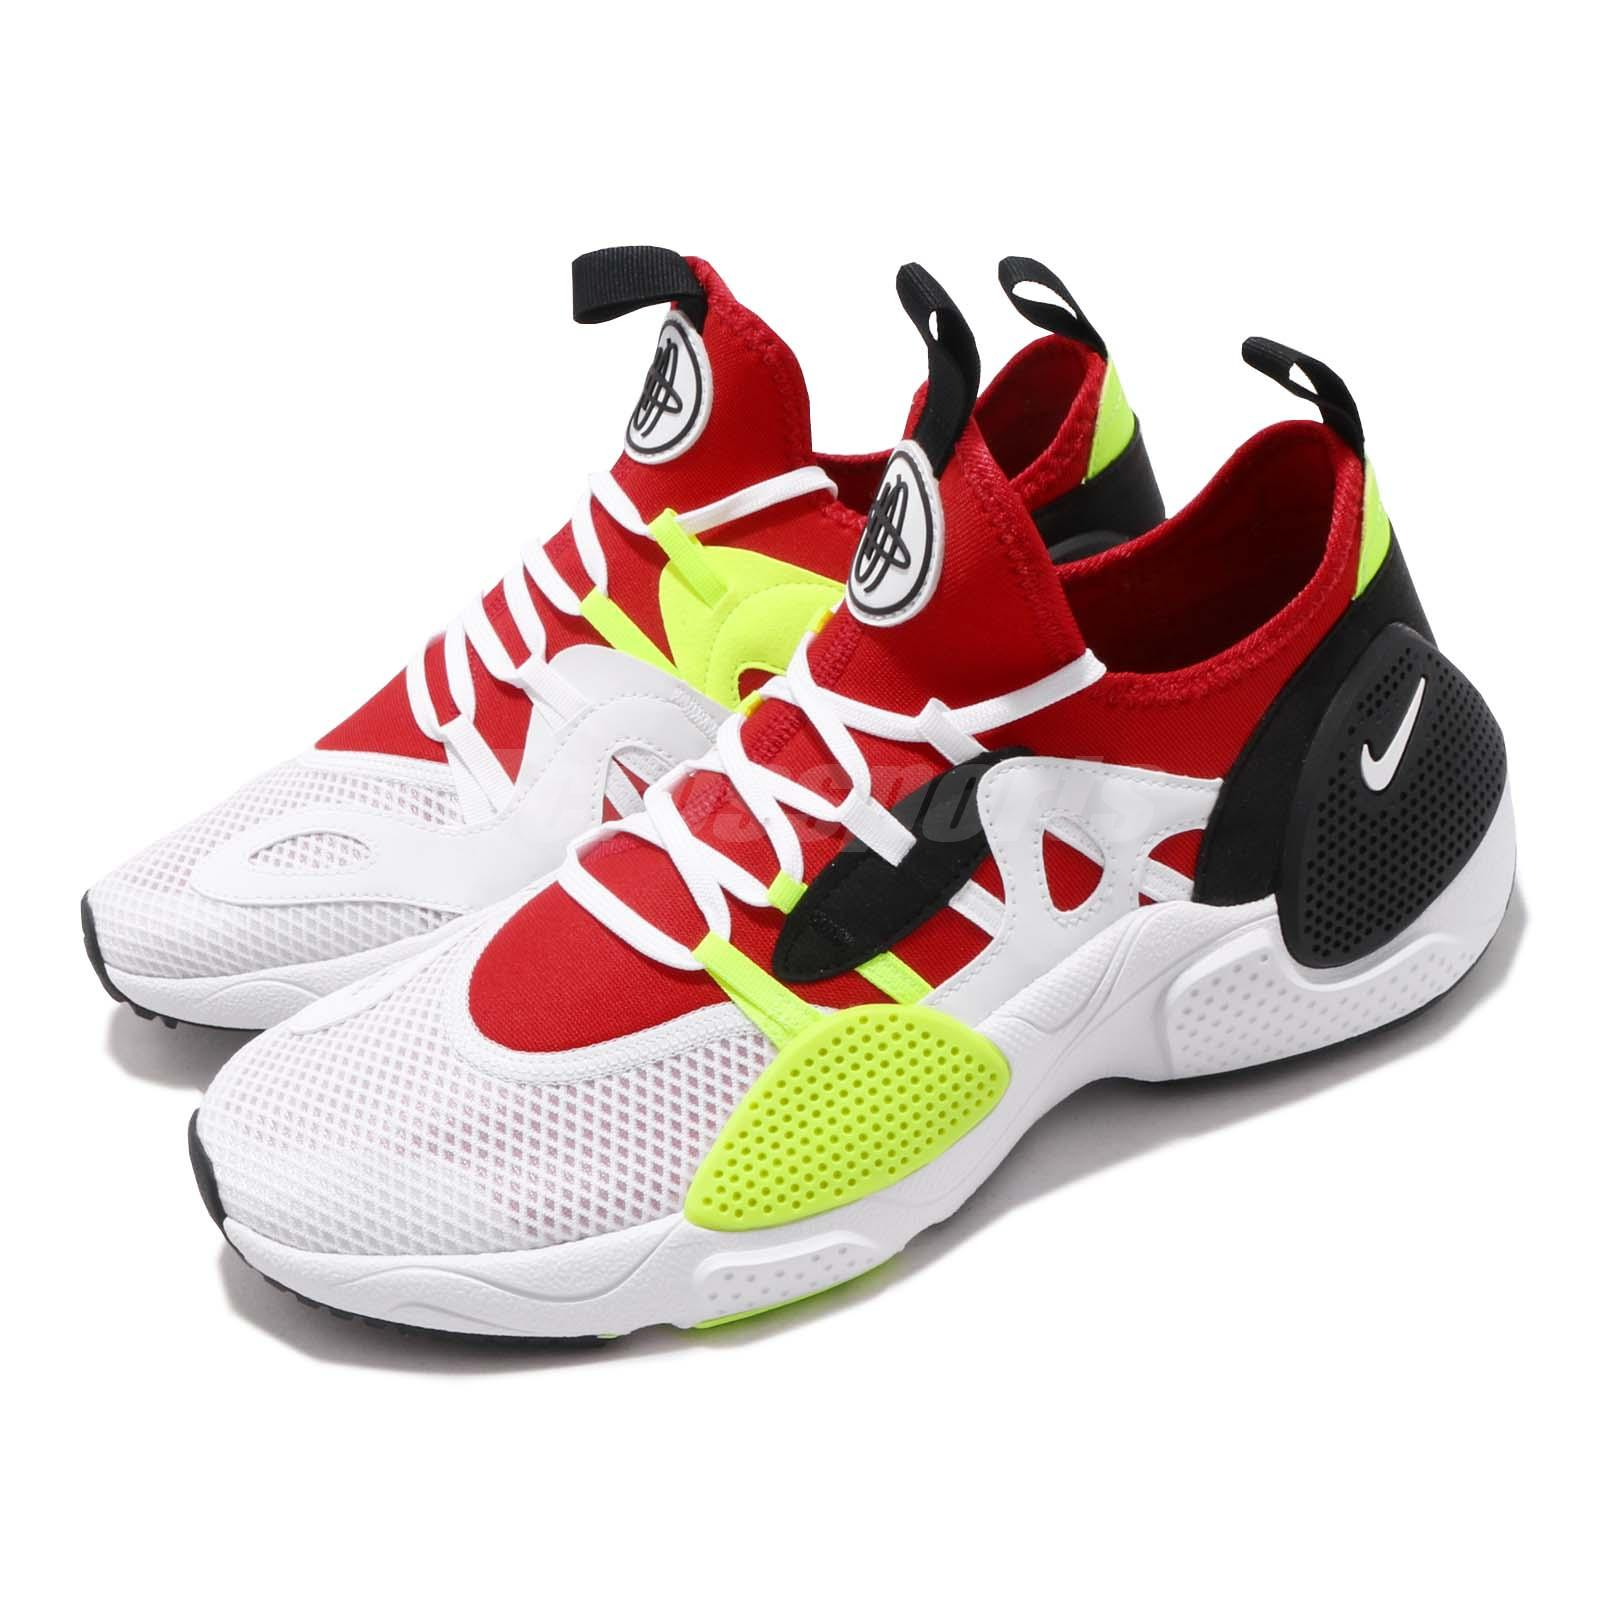 cheap for discount 6f063 aa992 Details about Nike Huarache E.D.G.E. Txt White Red Volt Black Men Shoes  Sneakers AO1697-100